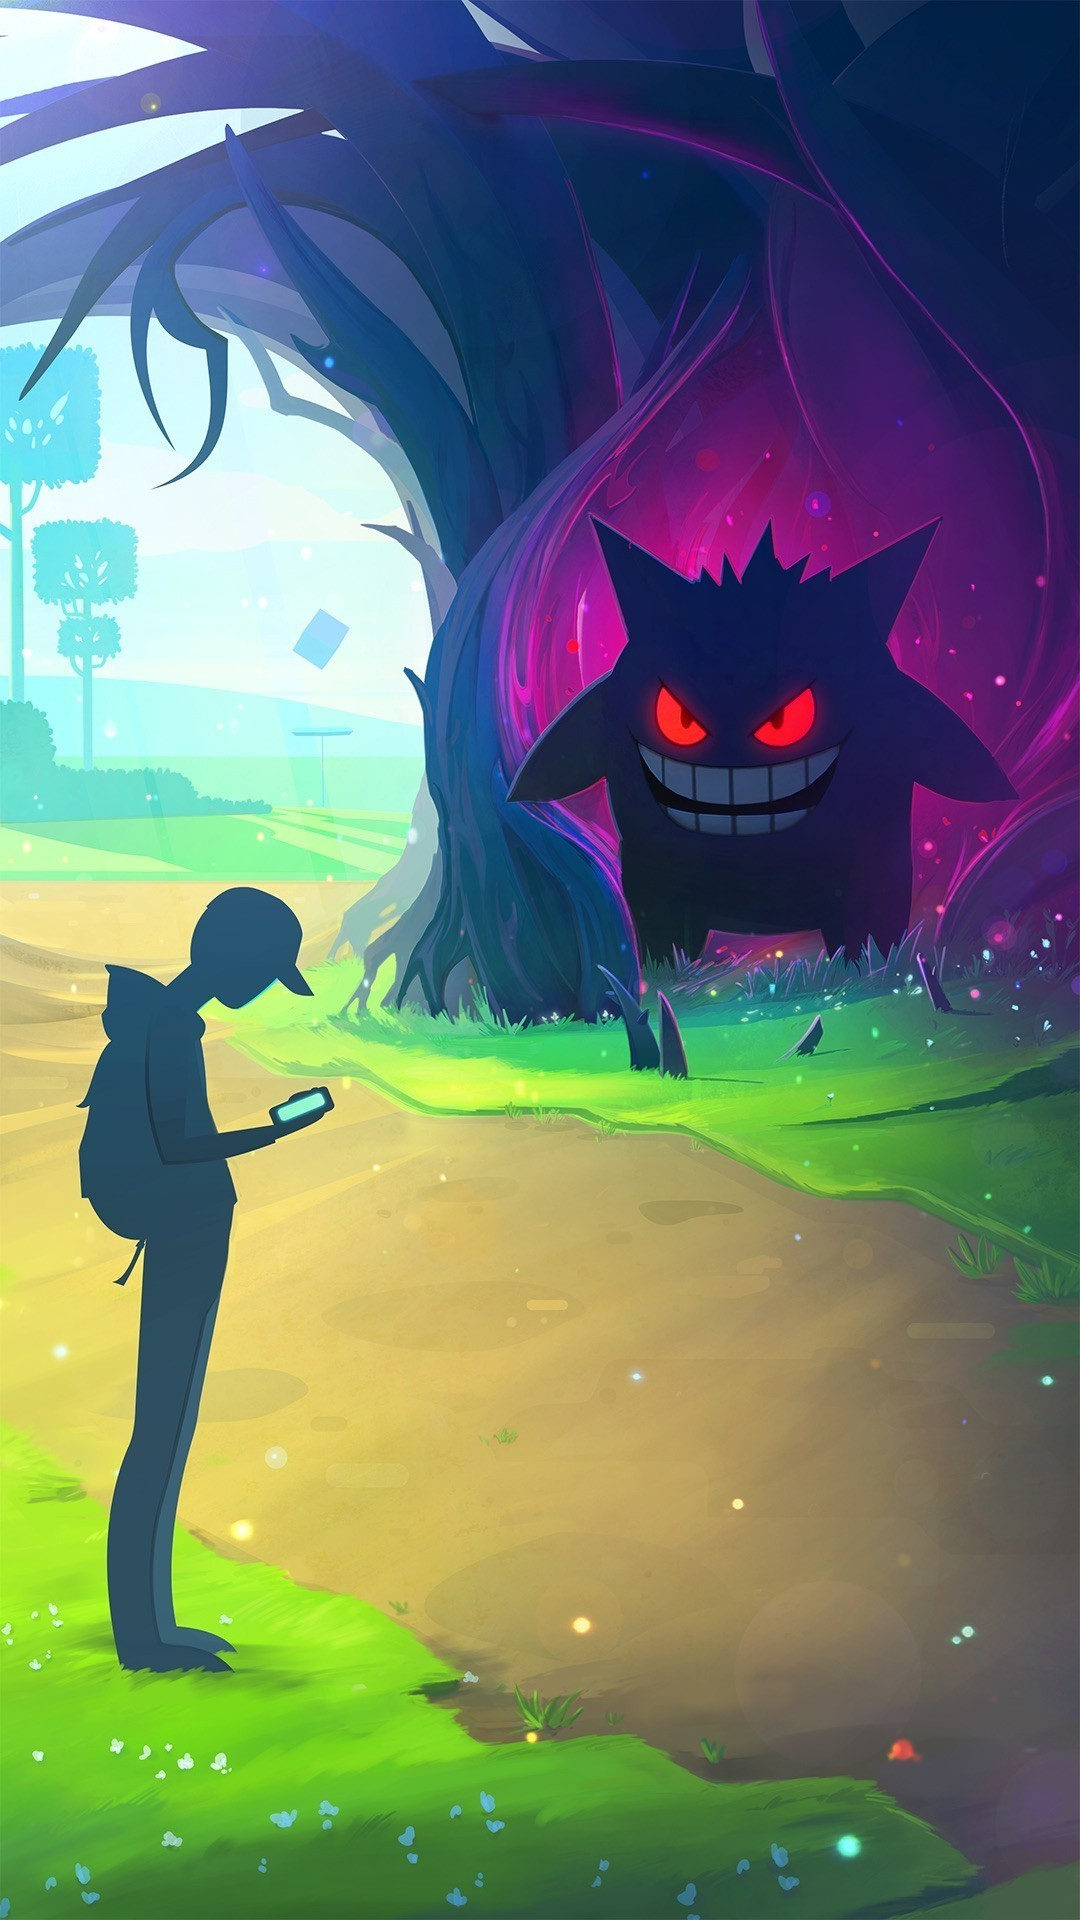 A trainer checks his Nearby radar while Gengar emerges, eyes glowing red,  from the ghostly bowels of an ancient Pokémon tree.